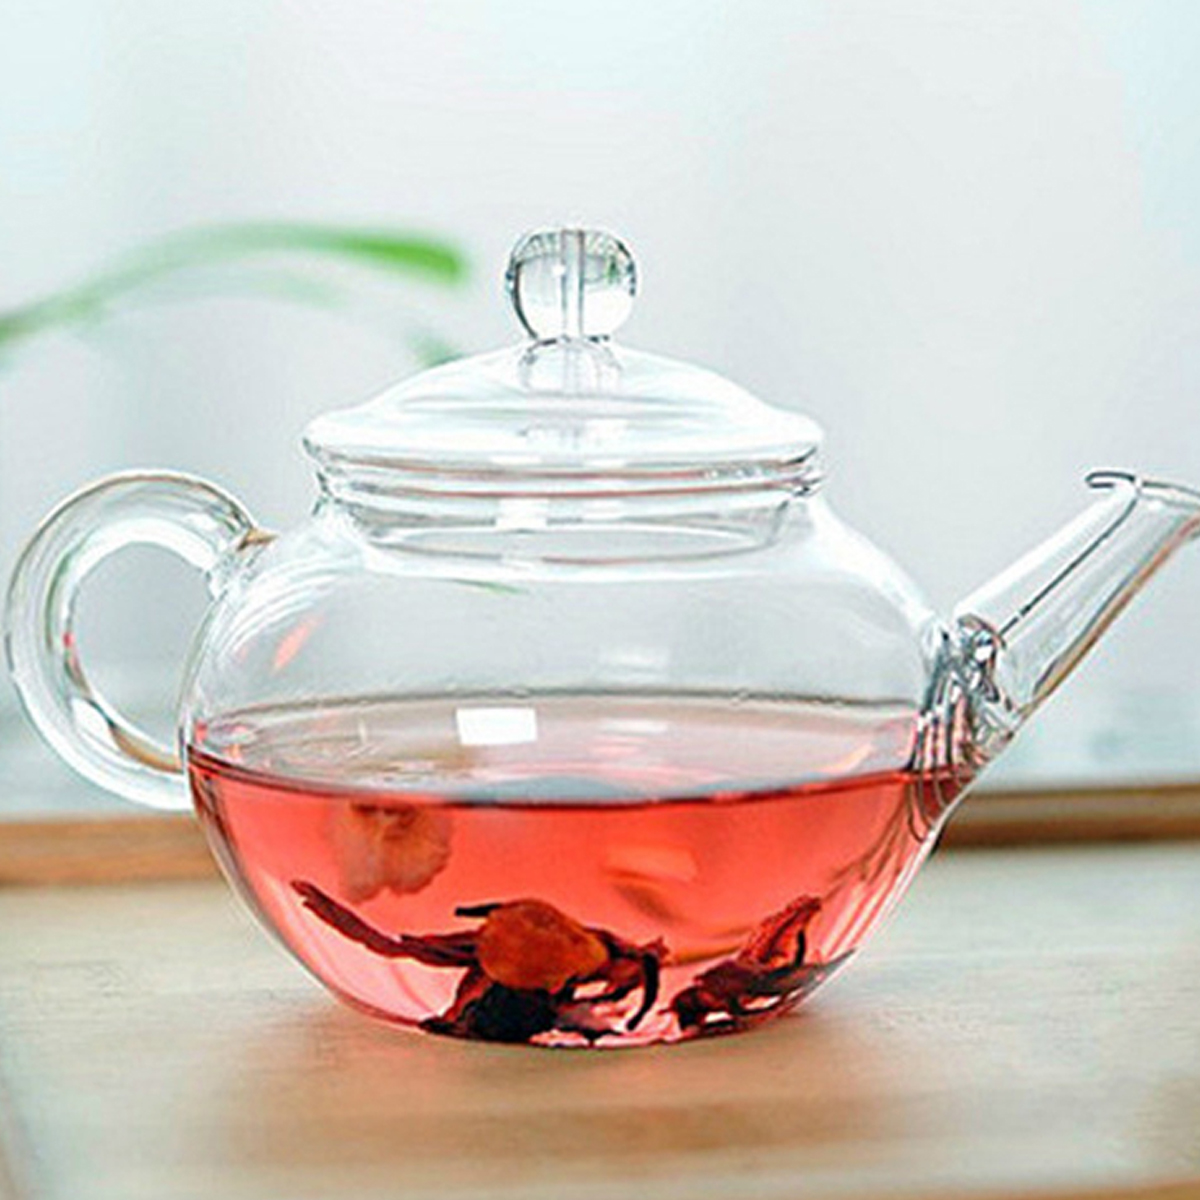 Heat resistant clear glass teapot with infuser coffee tea leaf herbal pot 250ml ebay - Tea pots with infuser ...